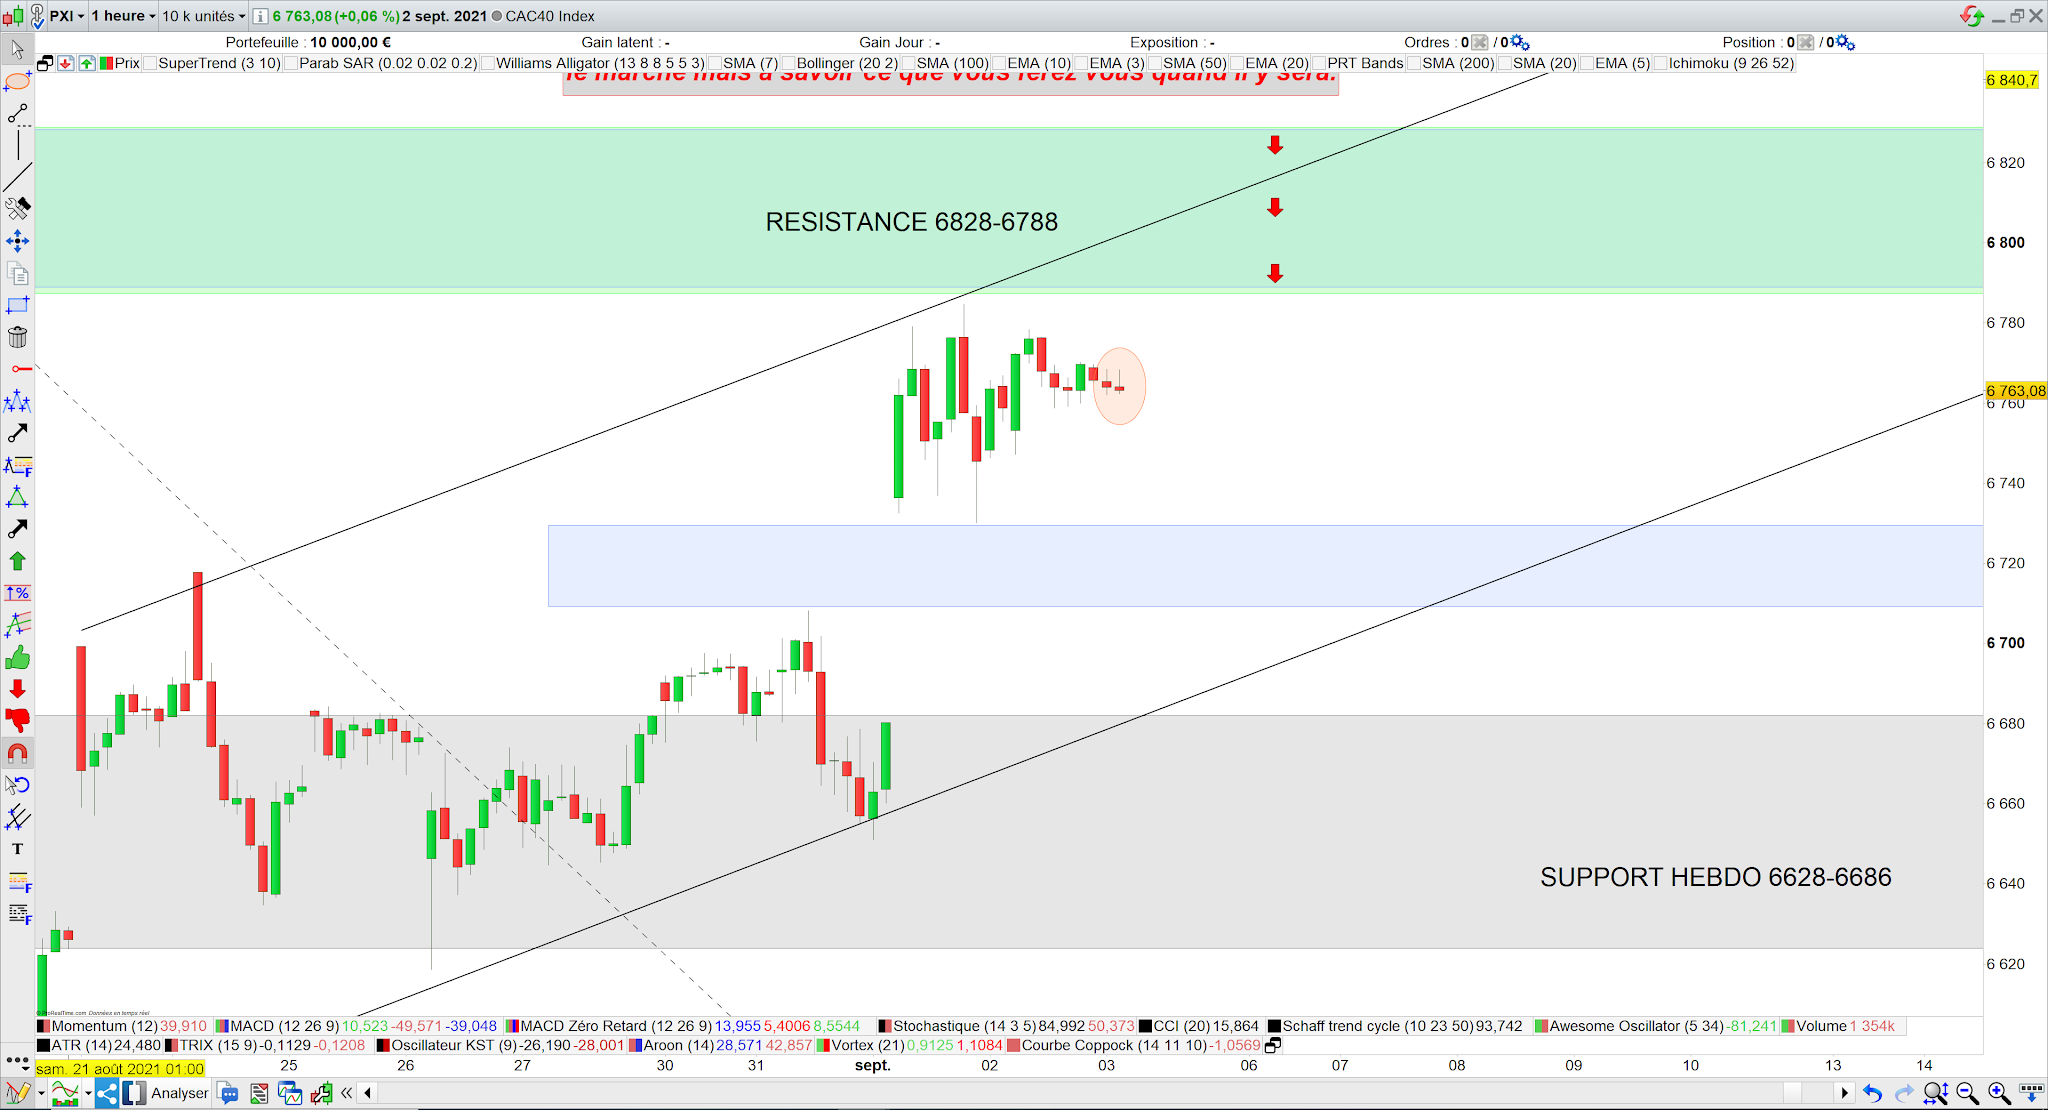 Trading cac40 03/09/21